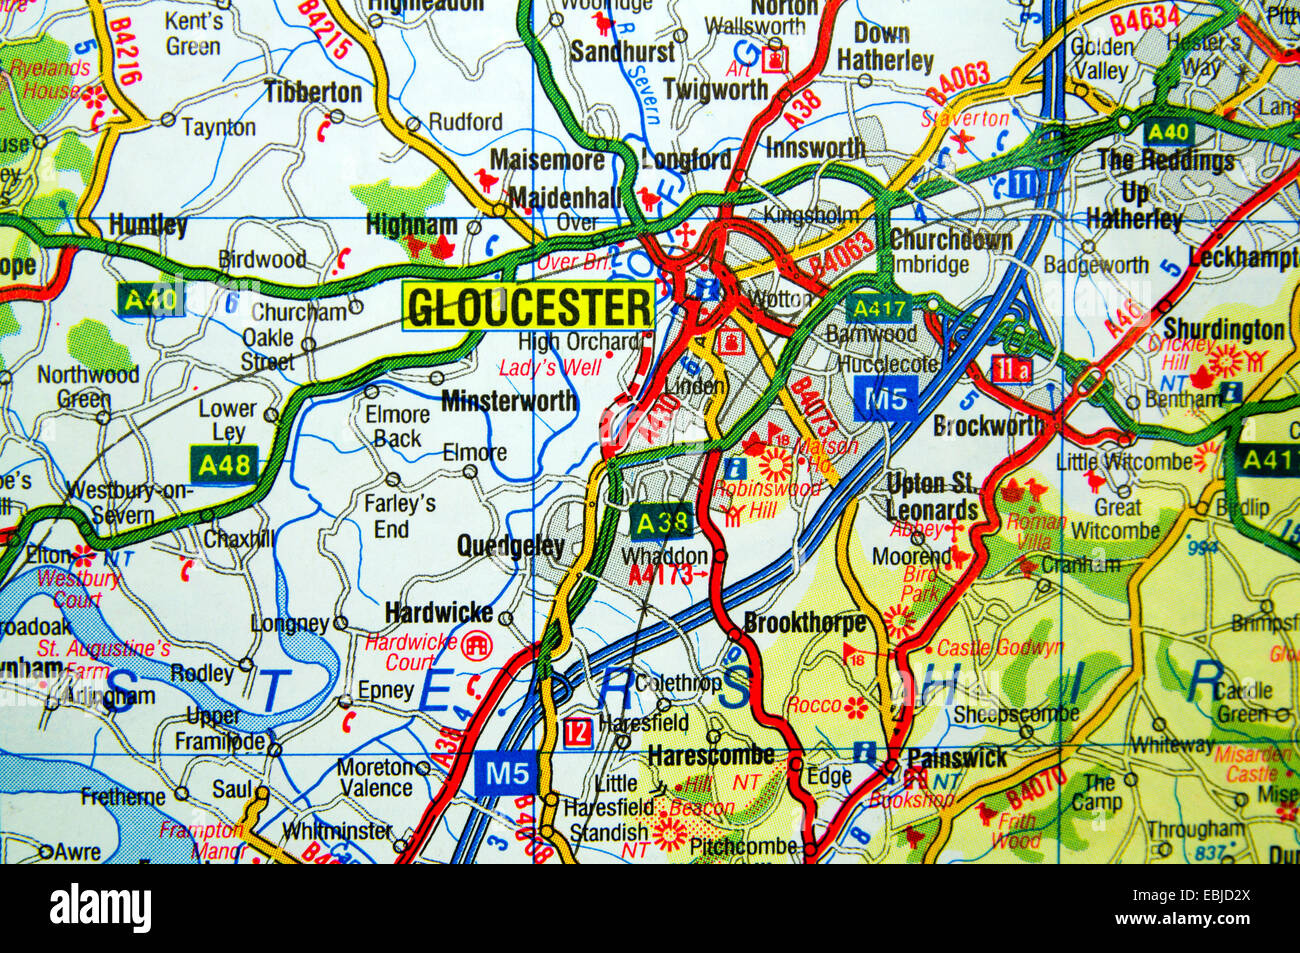 Road Map Of Gloucester England Stock Photo Royalty Free Image - Gloucester map